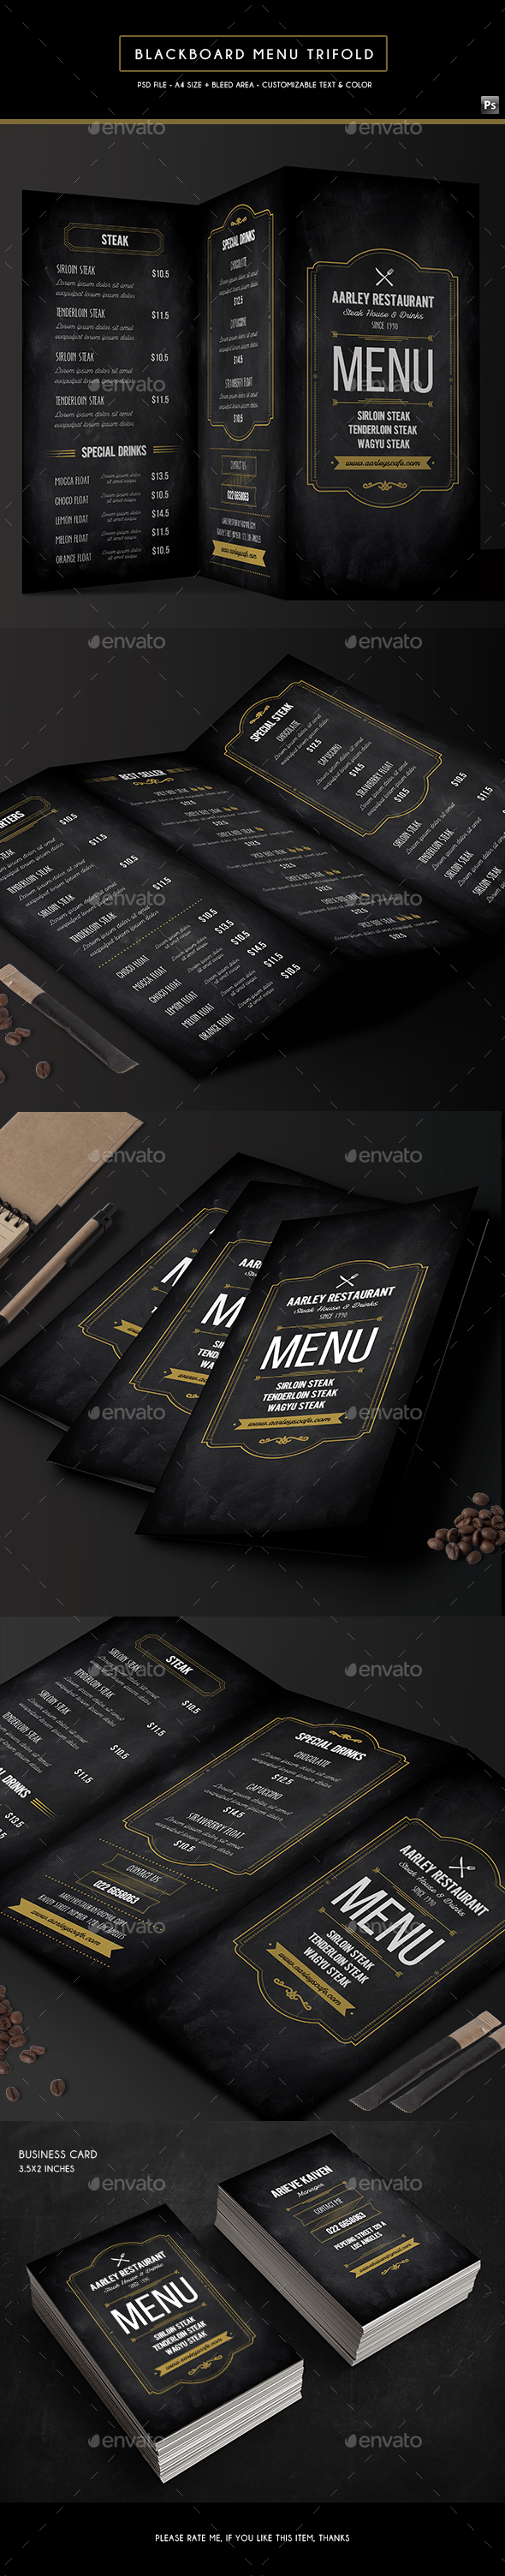 Business card restaurant menu menu templates from graphicriver flashek Choice Image